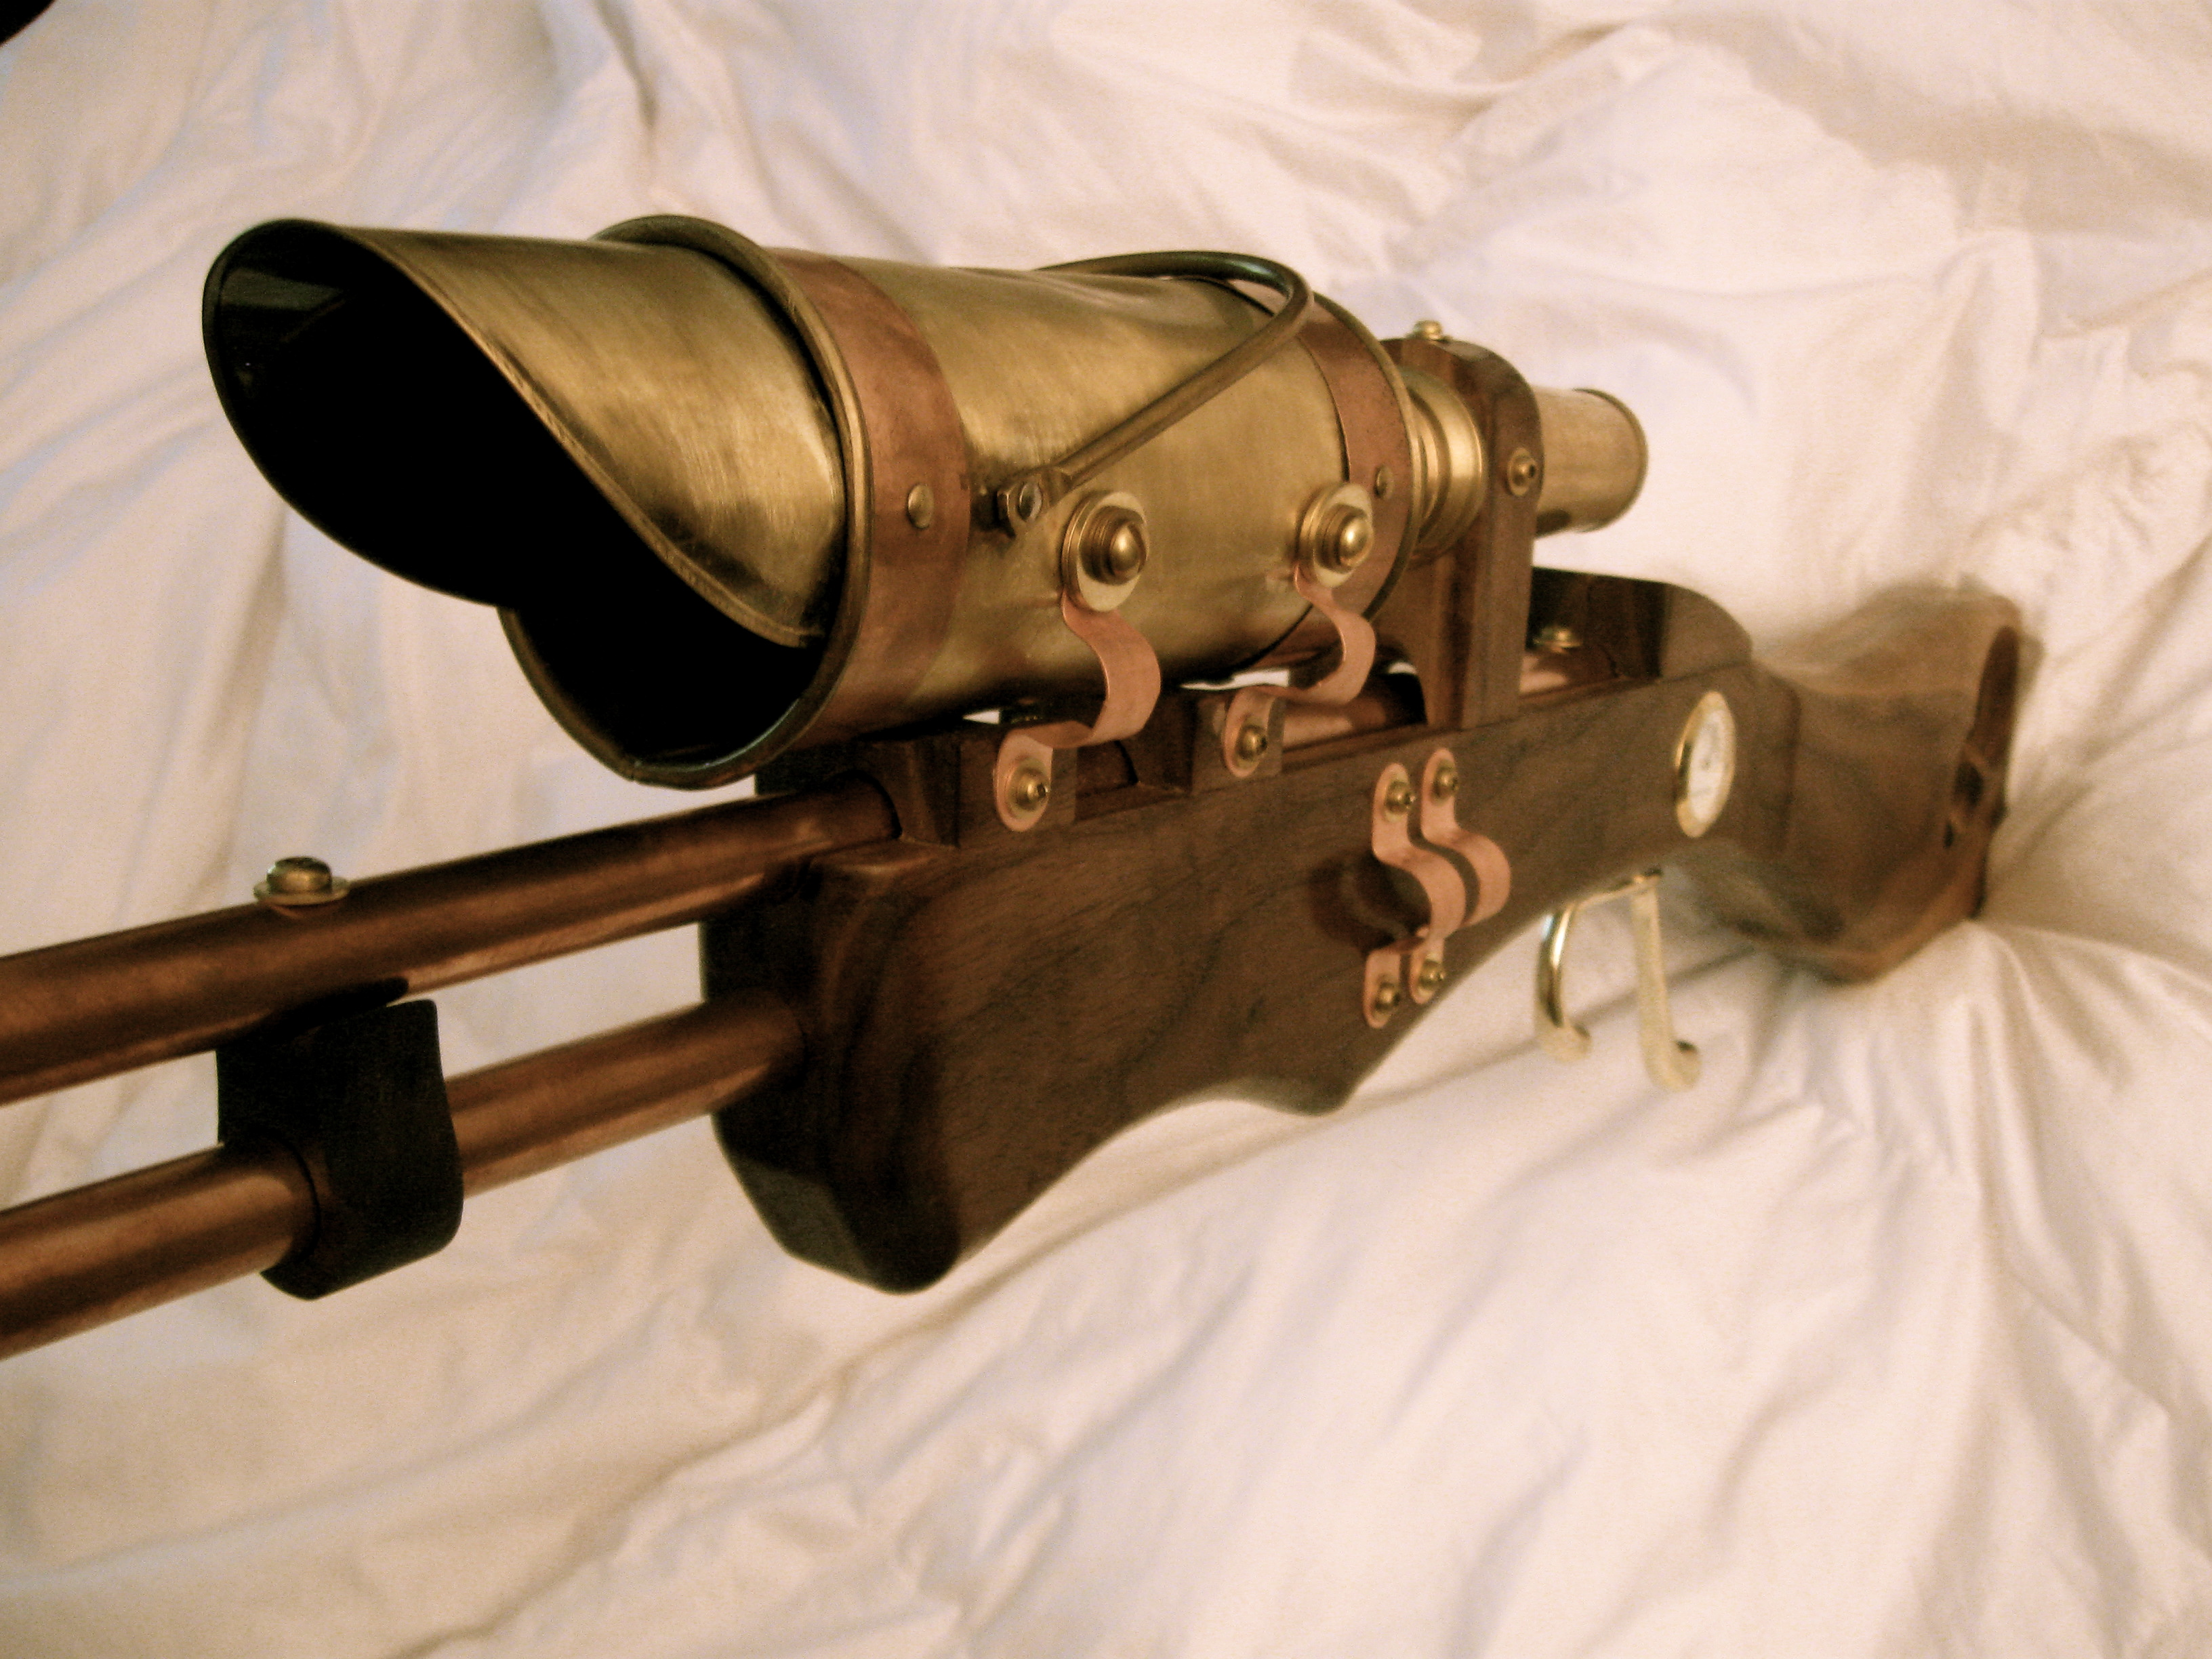 Kyle Miller's steampunk gun and gunsight